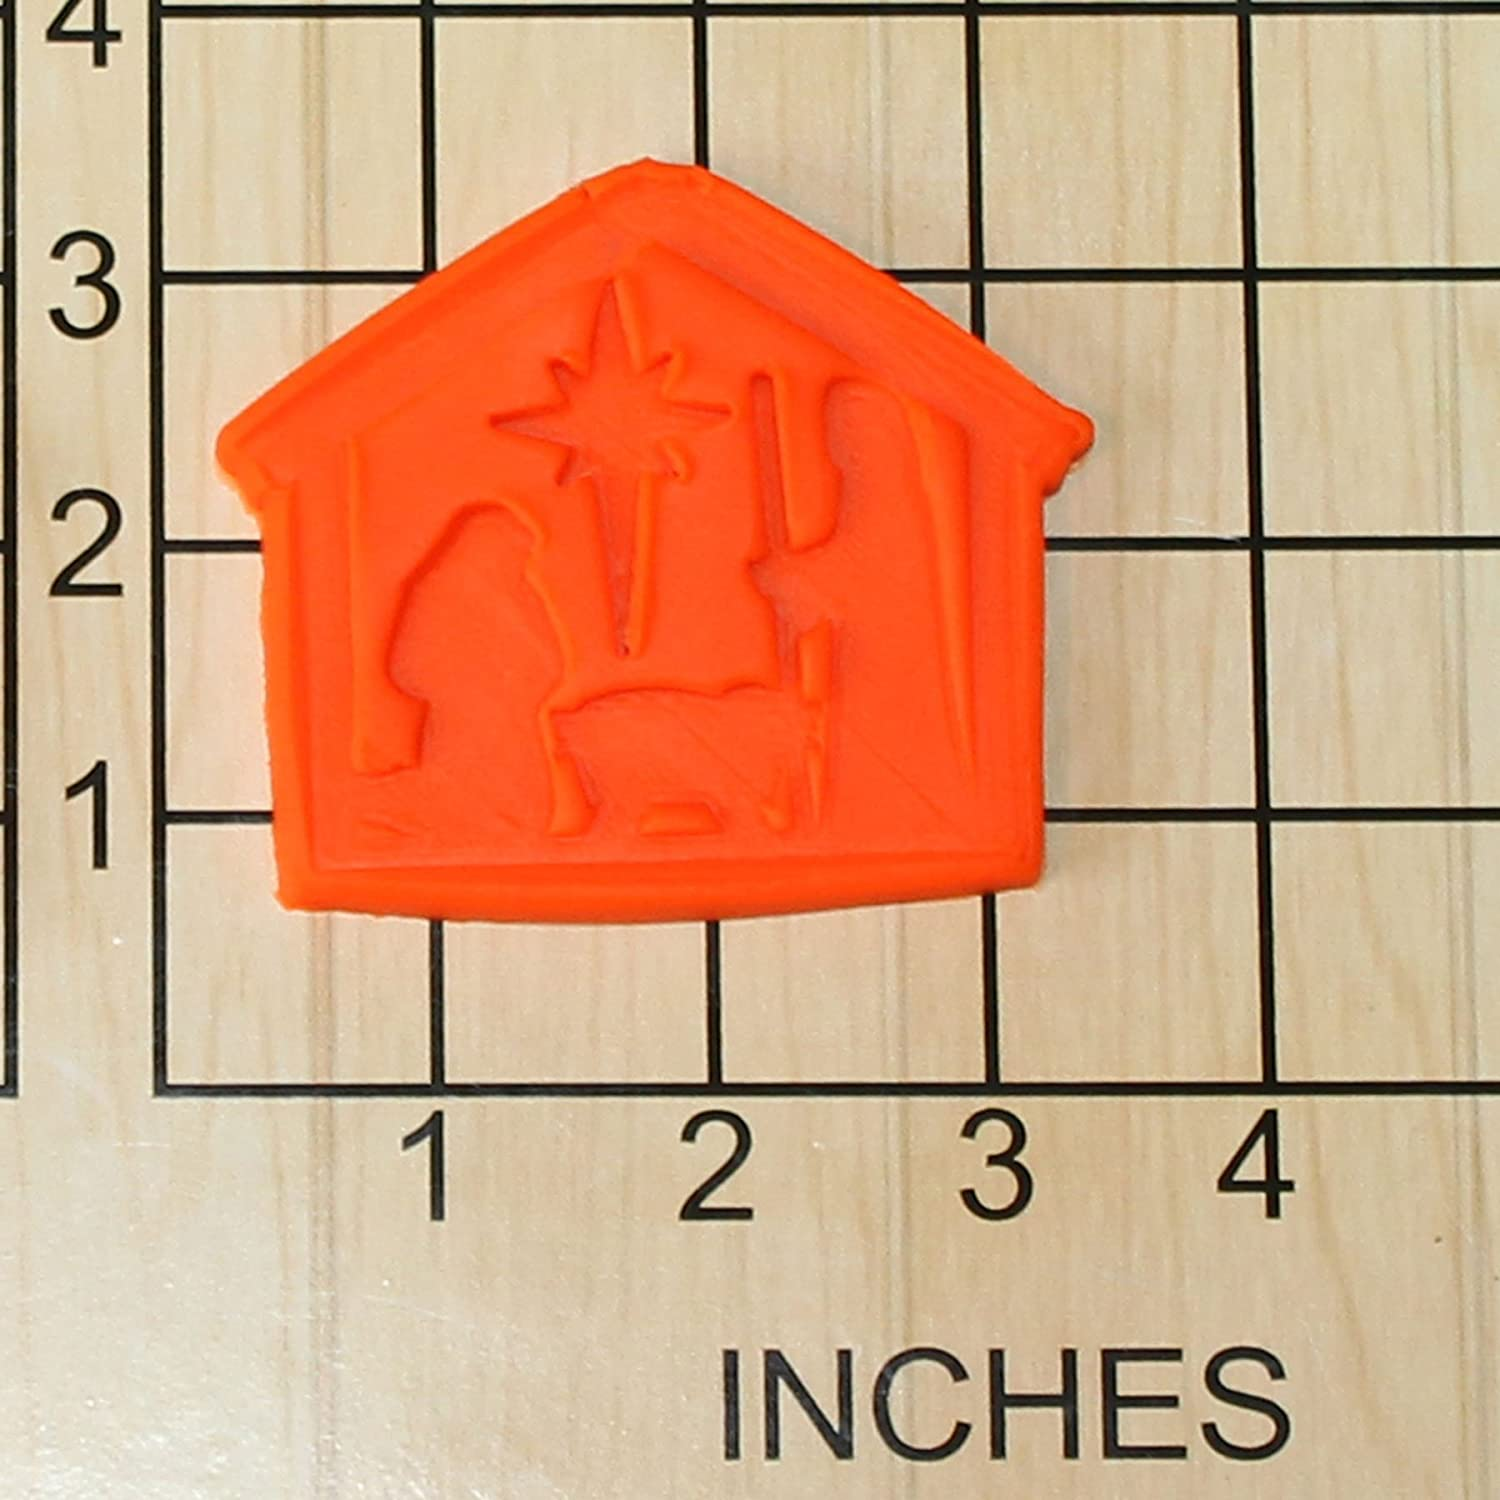 Christmas Manger Shape Fondant Cookie Cutter and Stamp #1432